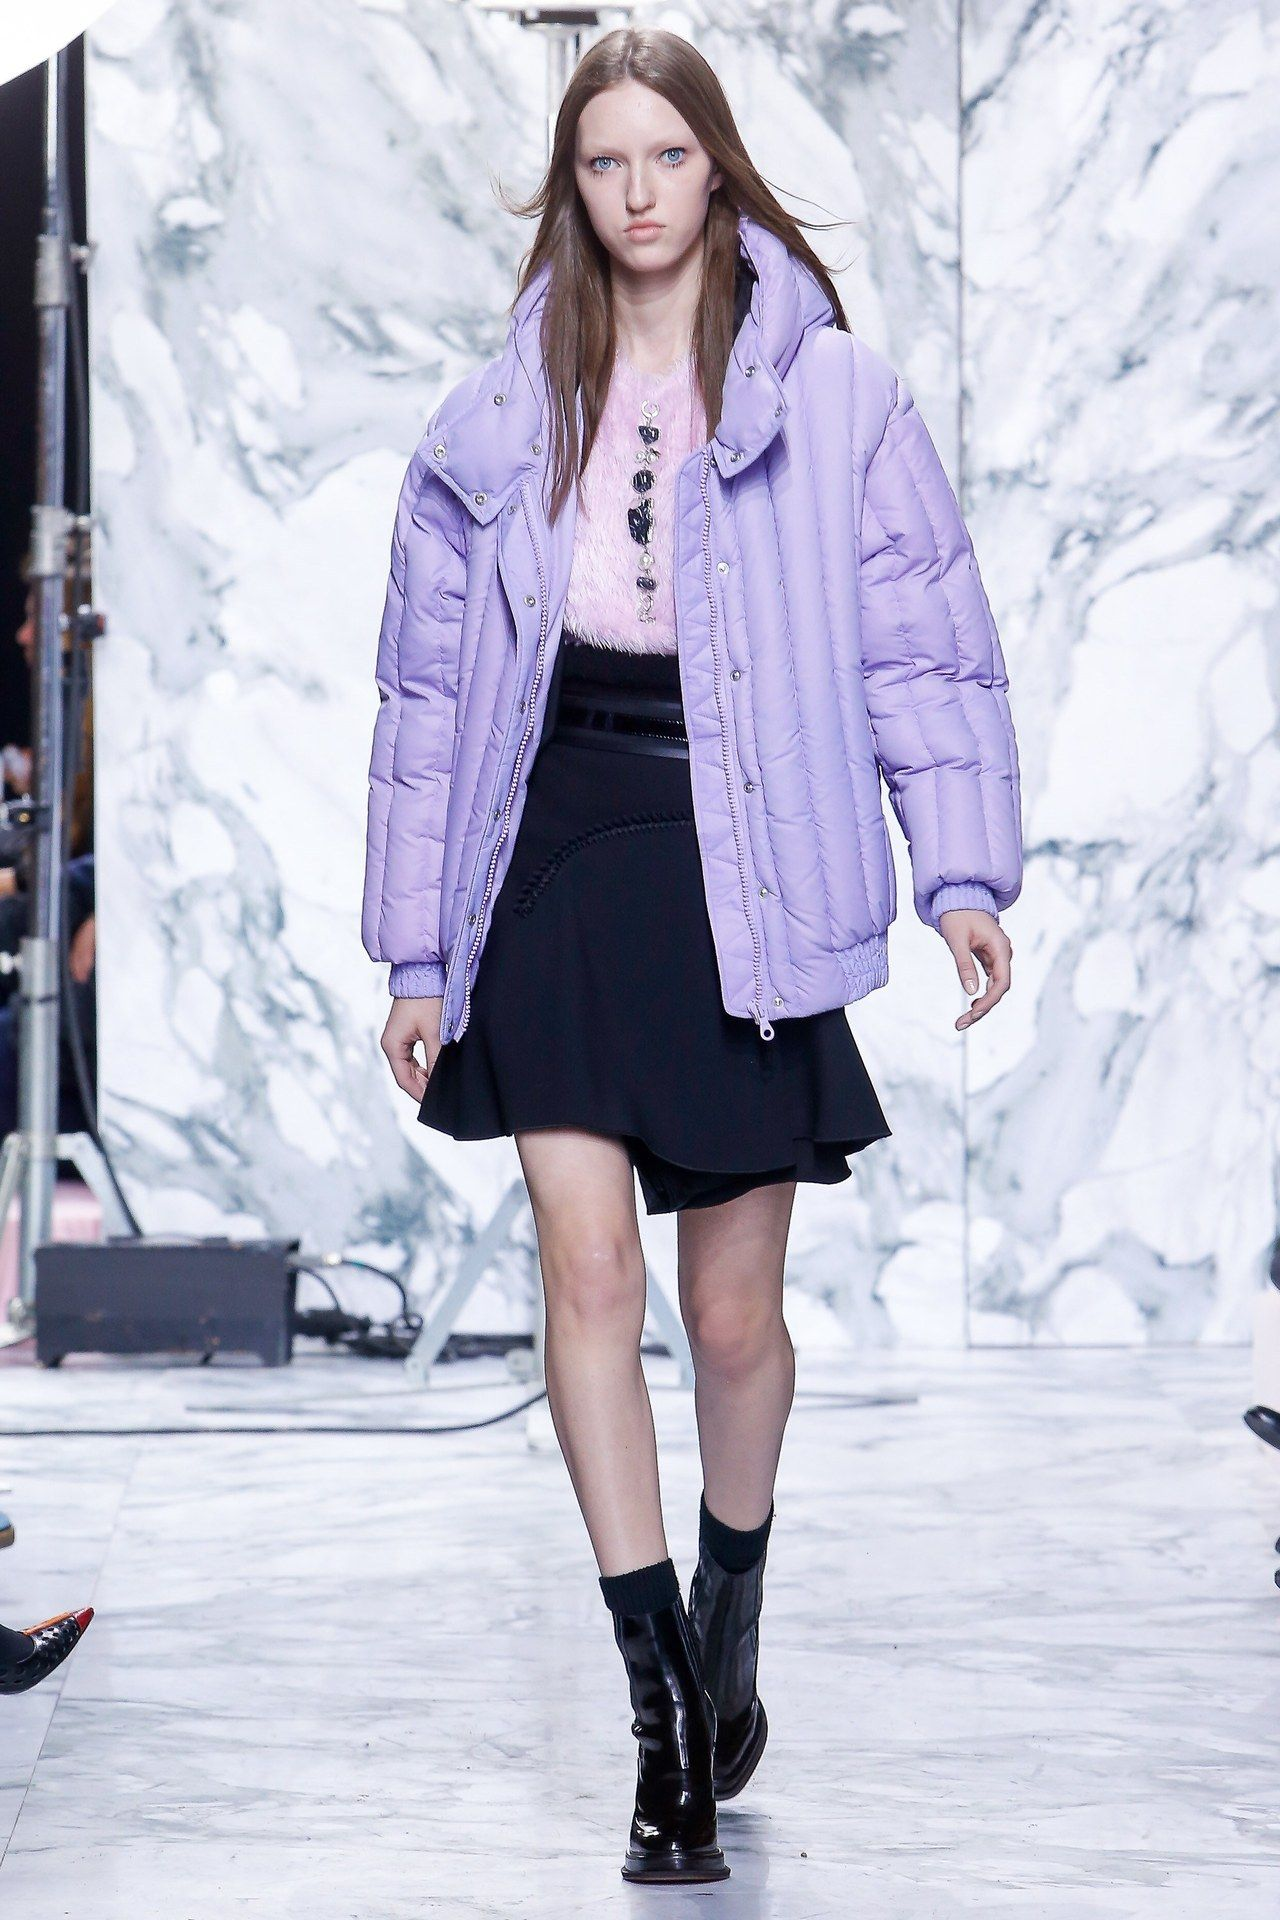 Carven RTW Spring '16 - #2016 #carven #catwalk #couture #fashion #high #purple #rtw #runway #style